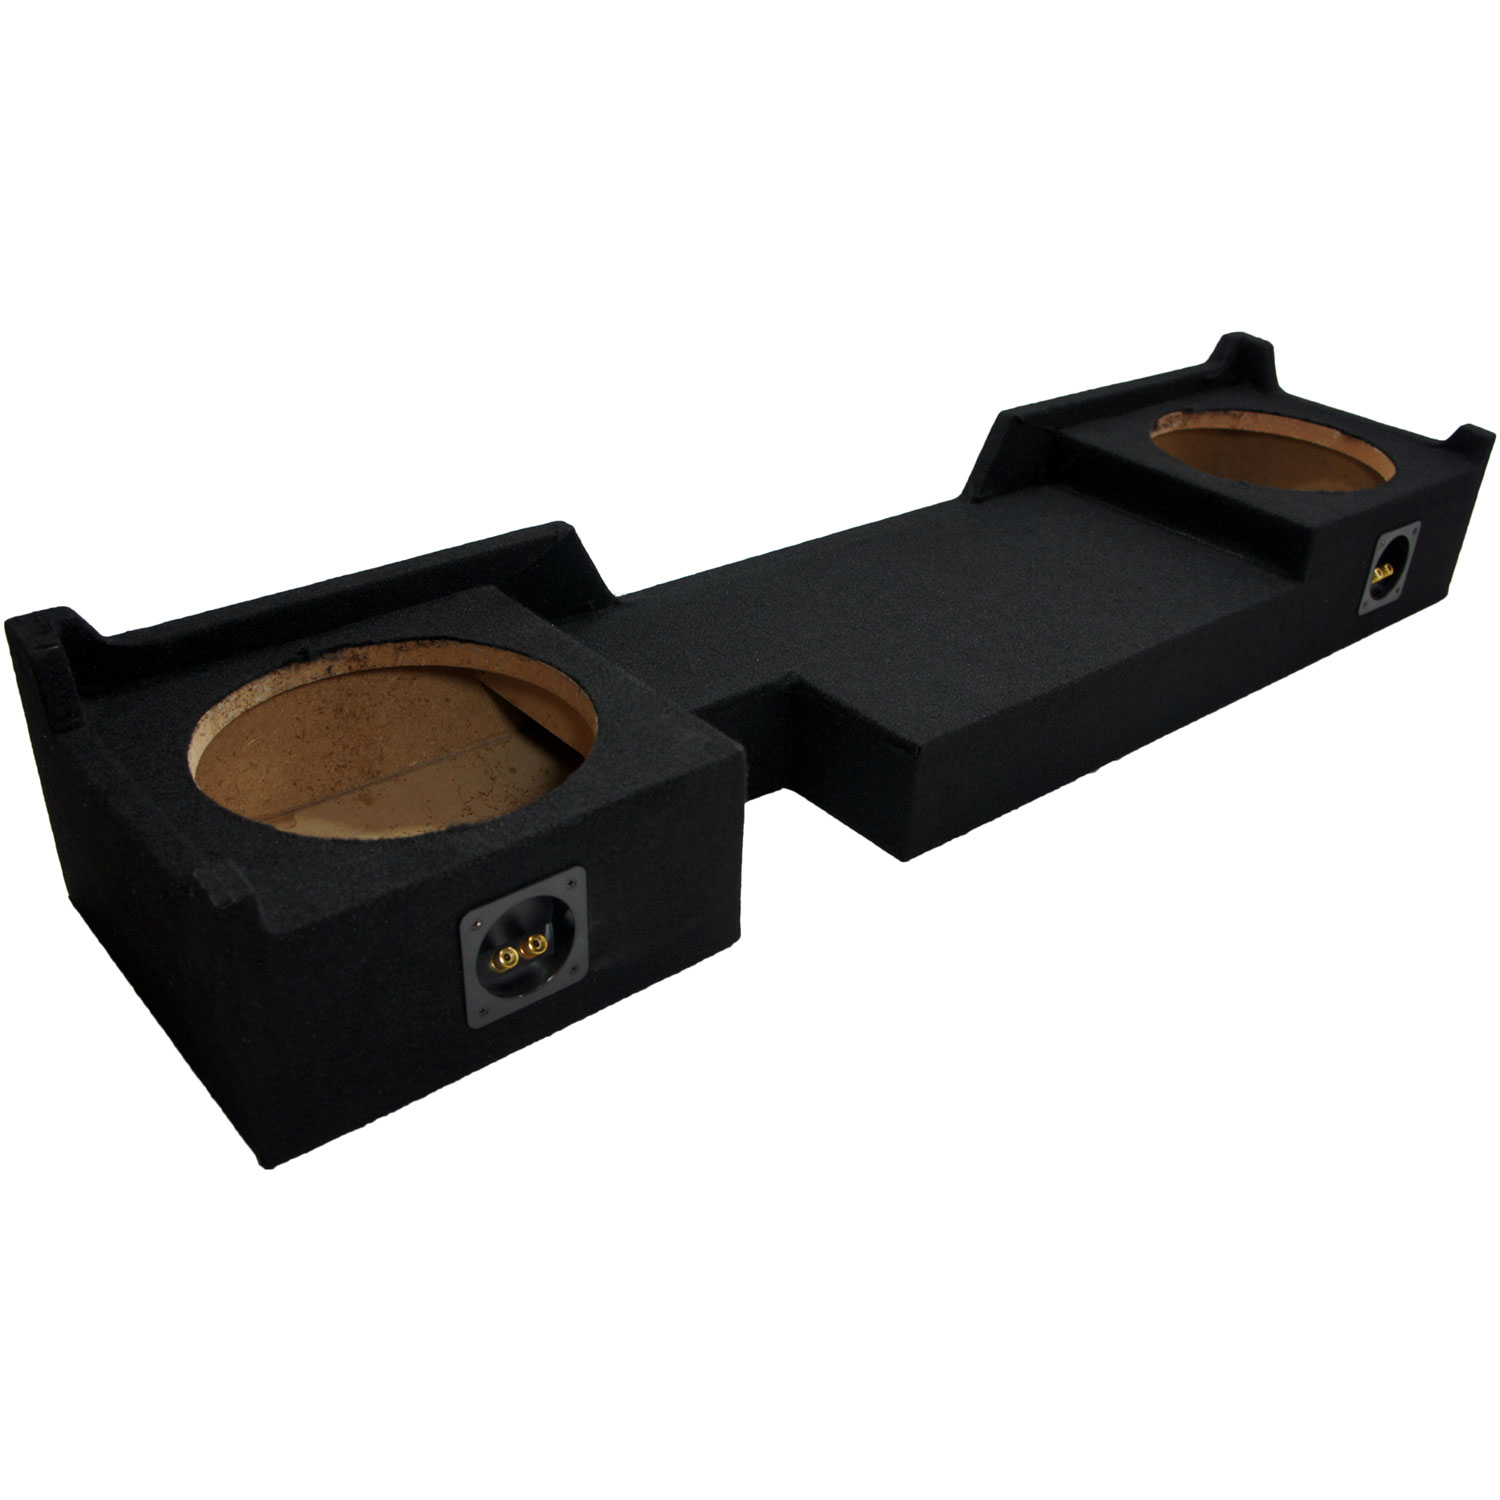 Harmony Audio HA-A102 Subwoofer Bundle with Dual 10 Sub Box Enclosure Compatible with 2004-2008 Ford F-150 Super Crew Truck 2